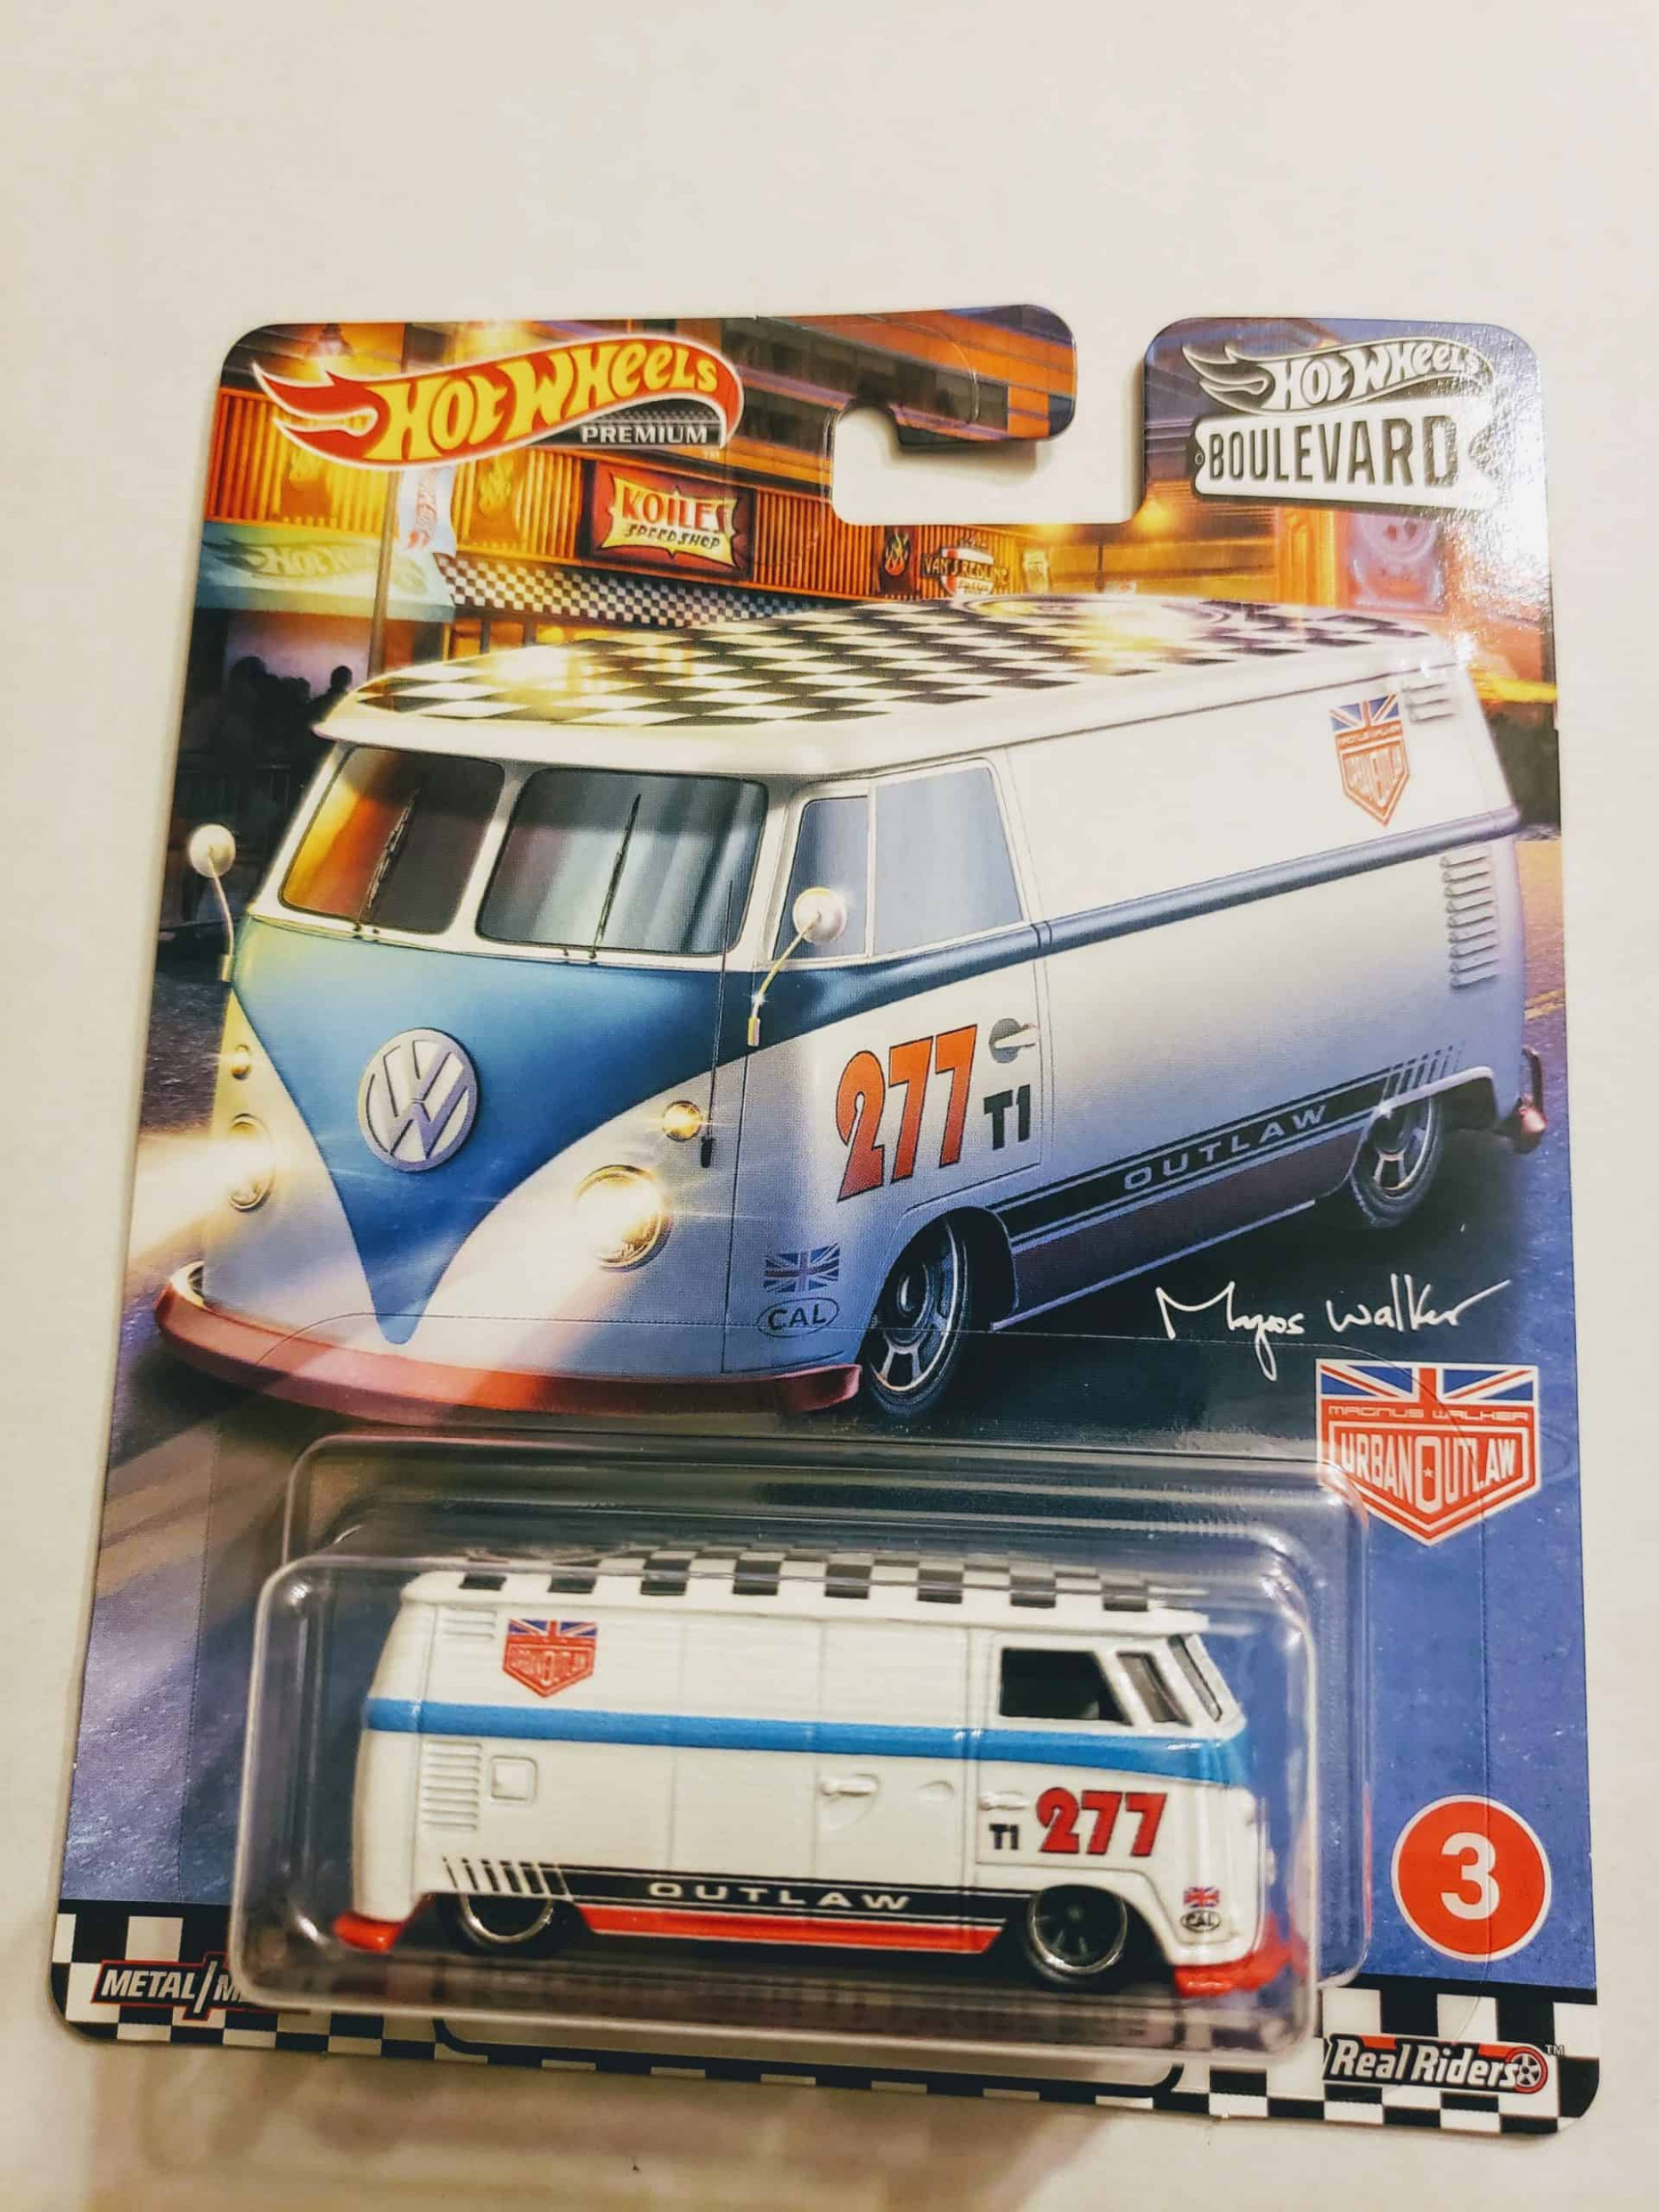 Hot Wheels 1111 Boulevard Volkswagen T11 Panel Bus GJT11 - hot wheels 2020 volkswagen series